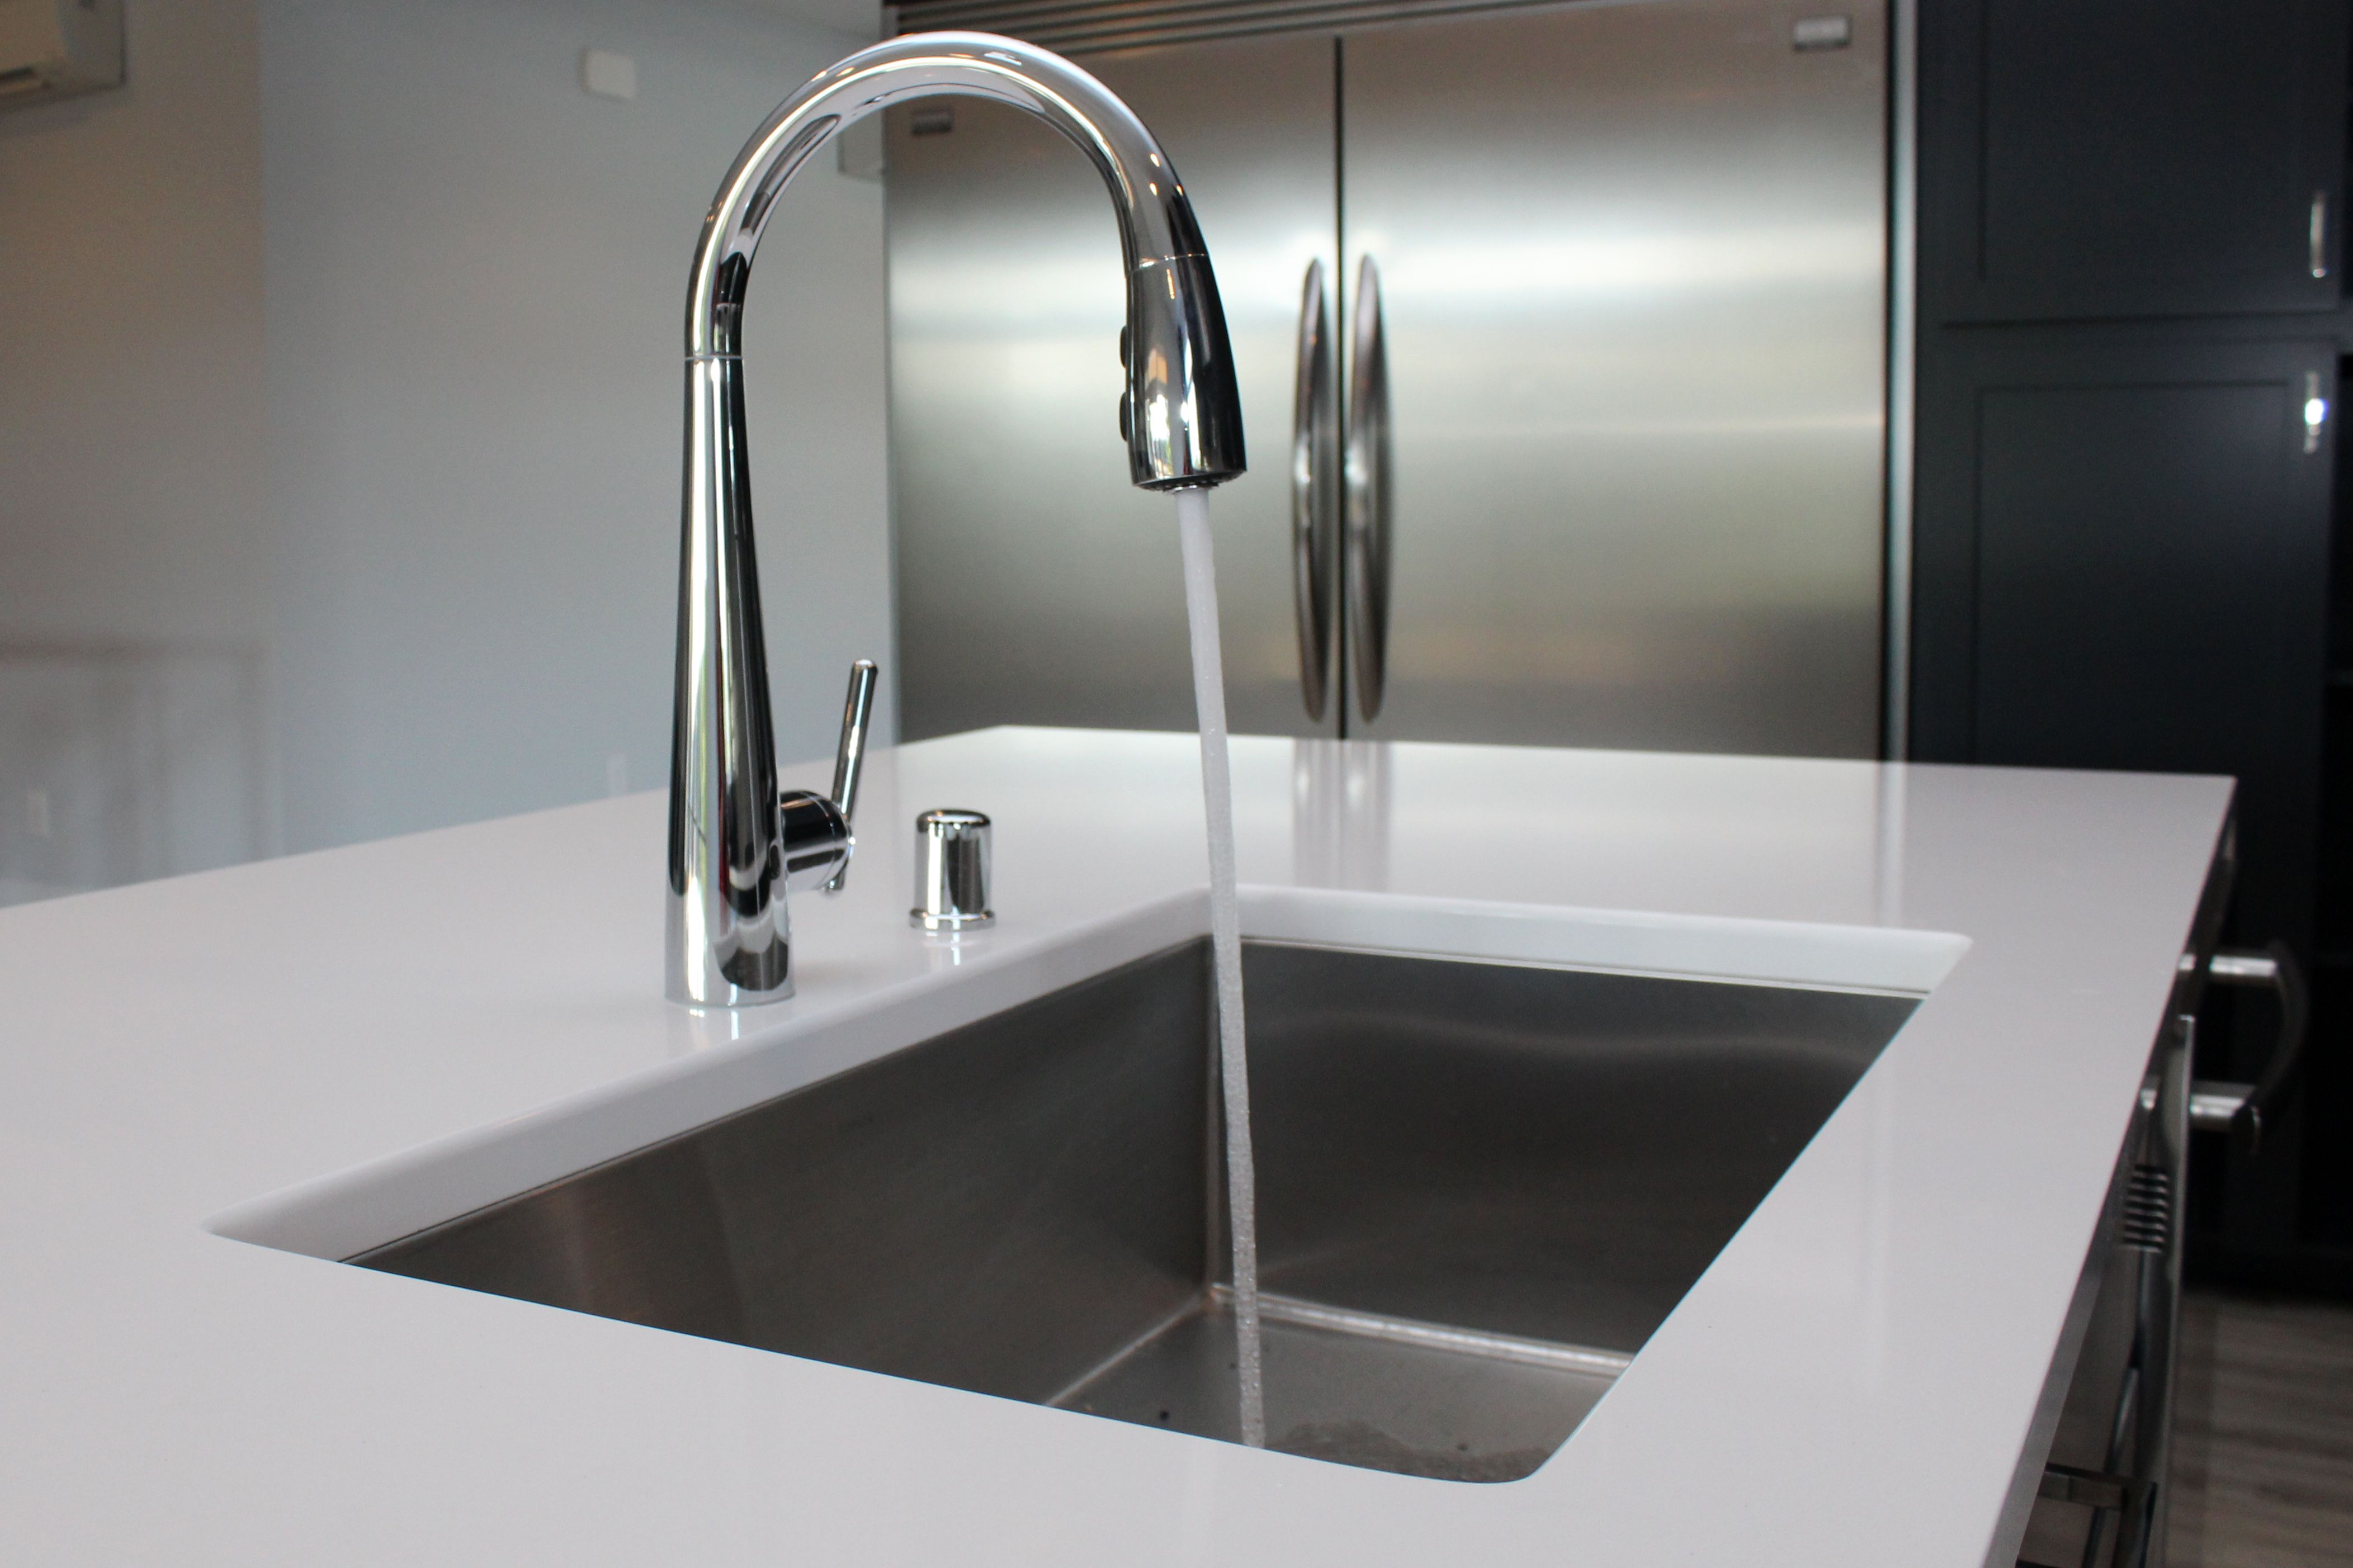 White Quartz Counter With Stainless Steel Undermount Sink